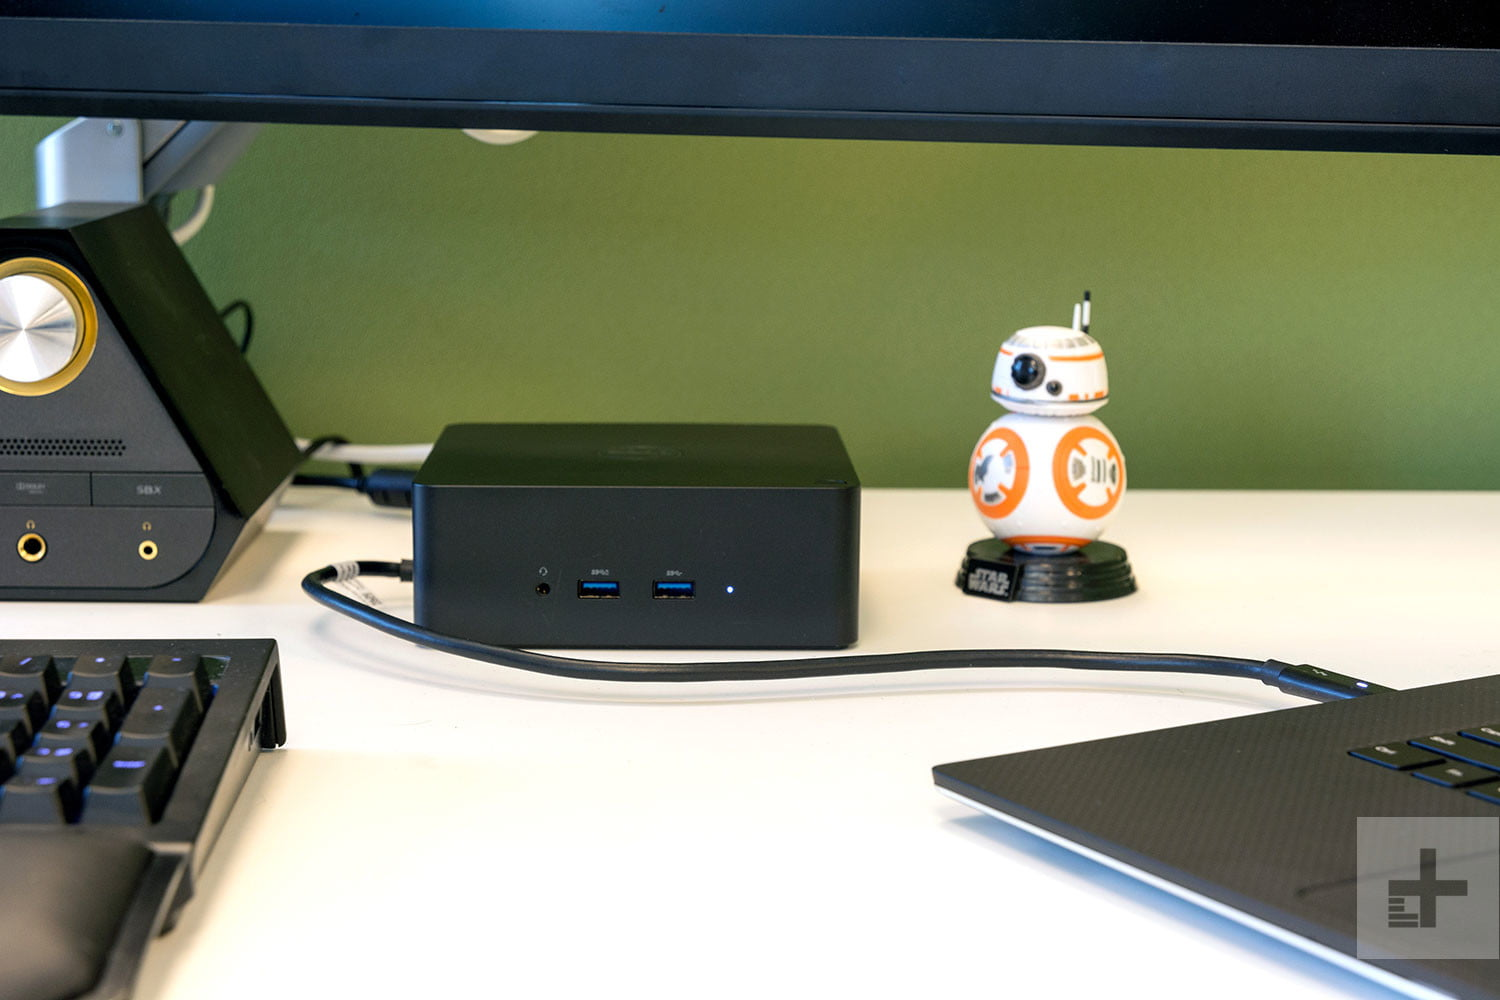 Dell Thunderbolt Dock Tb16 Hands On Review Digital Trends Macbook Pro Mini Displayport To Hdmi Wiring Diagram